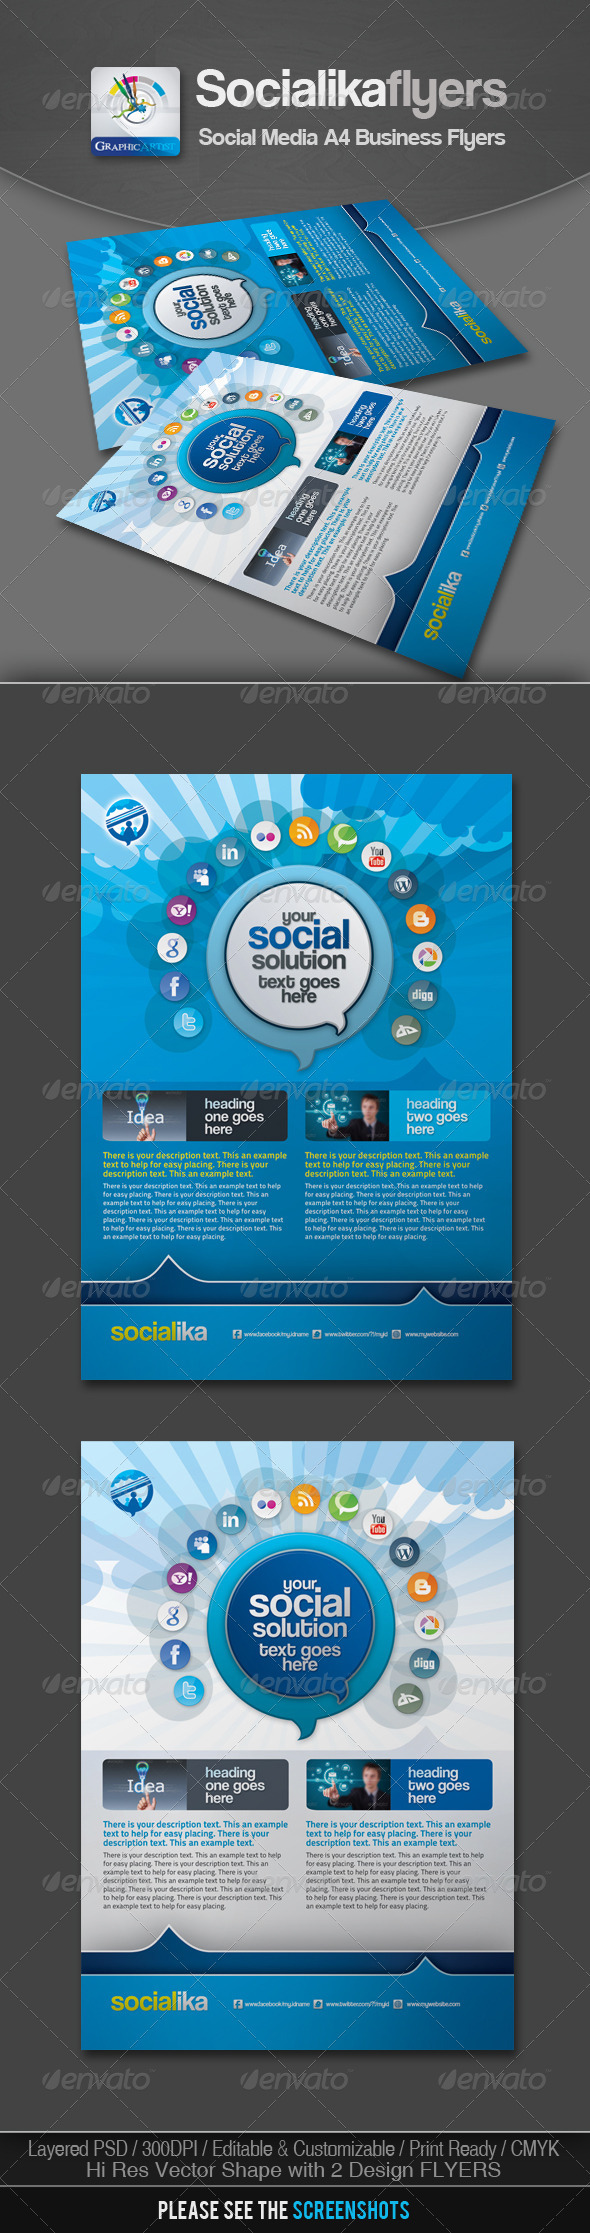 Socialika Social Media Business Flyers